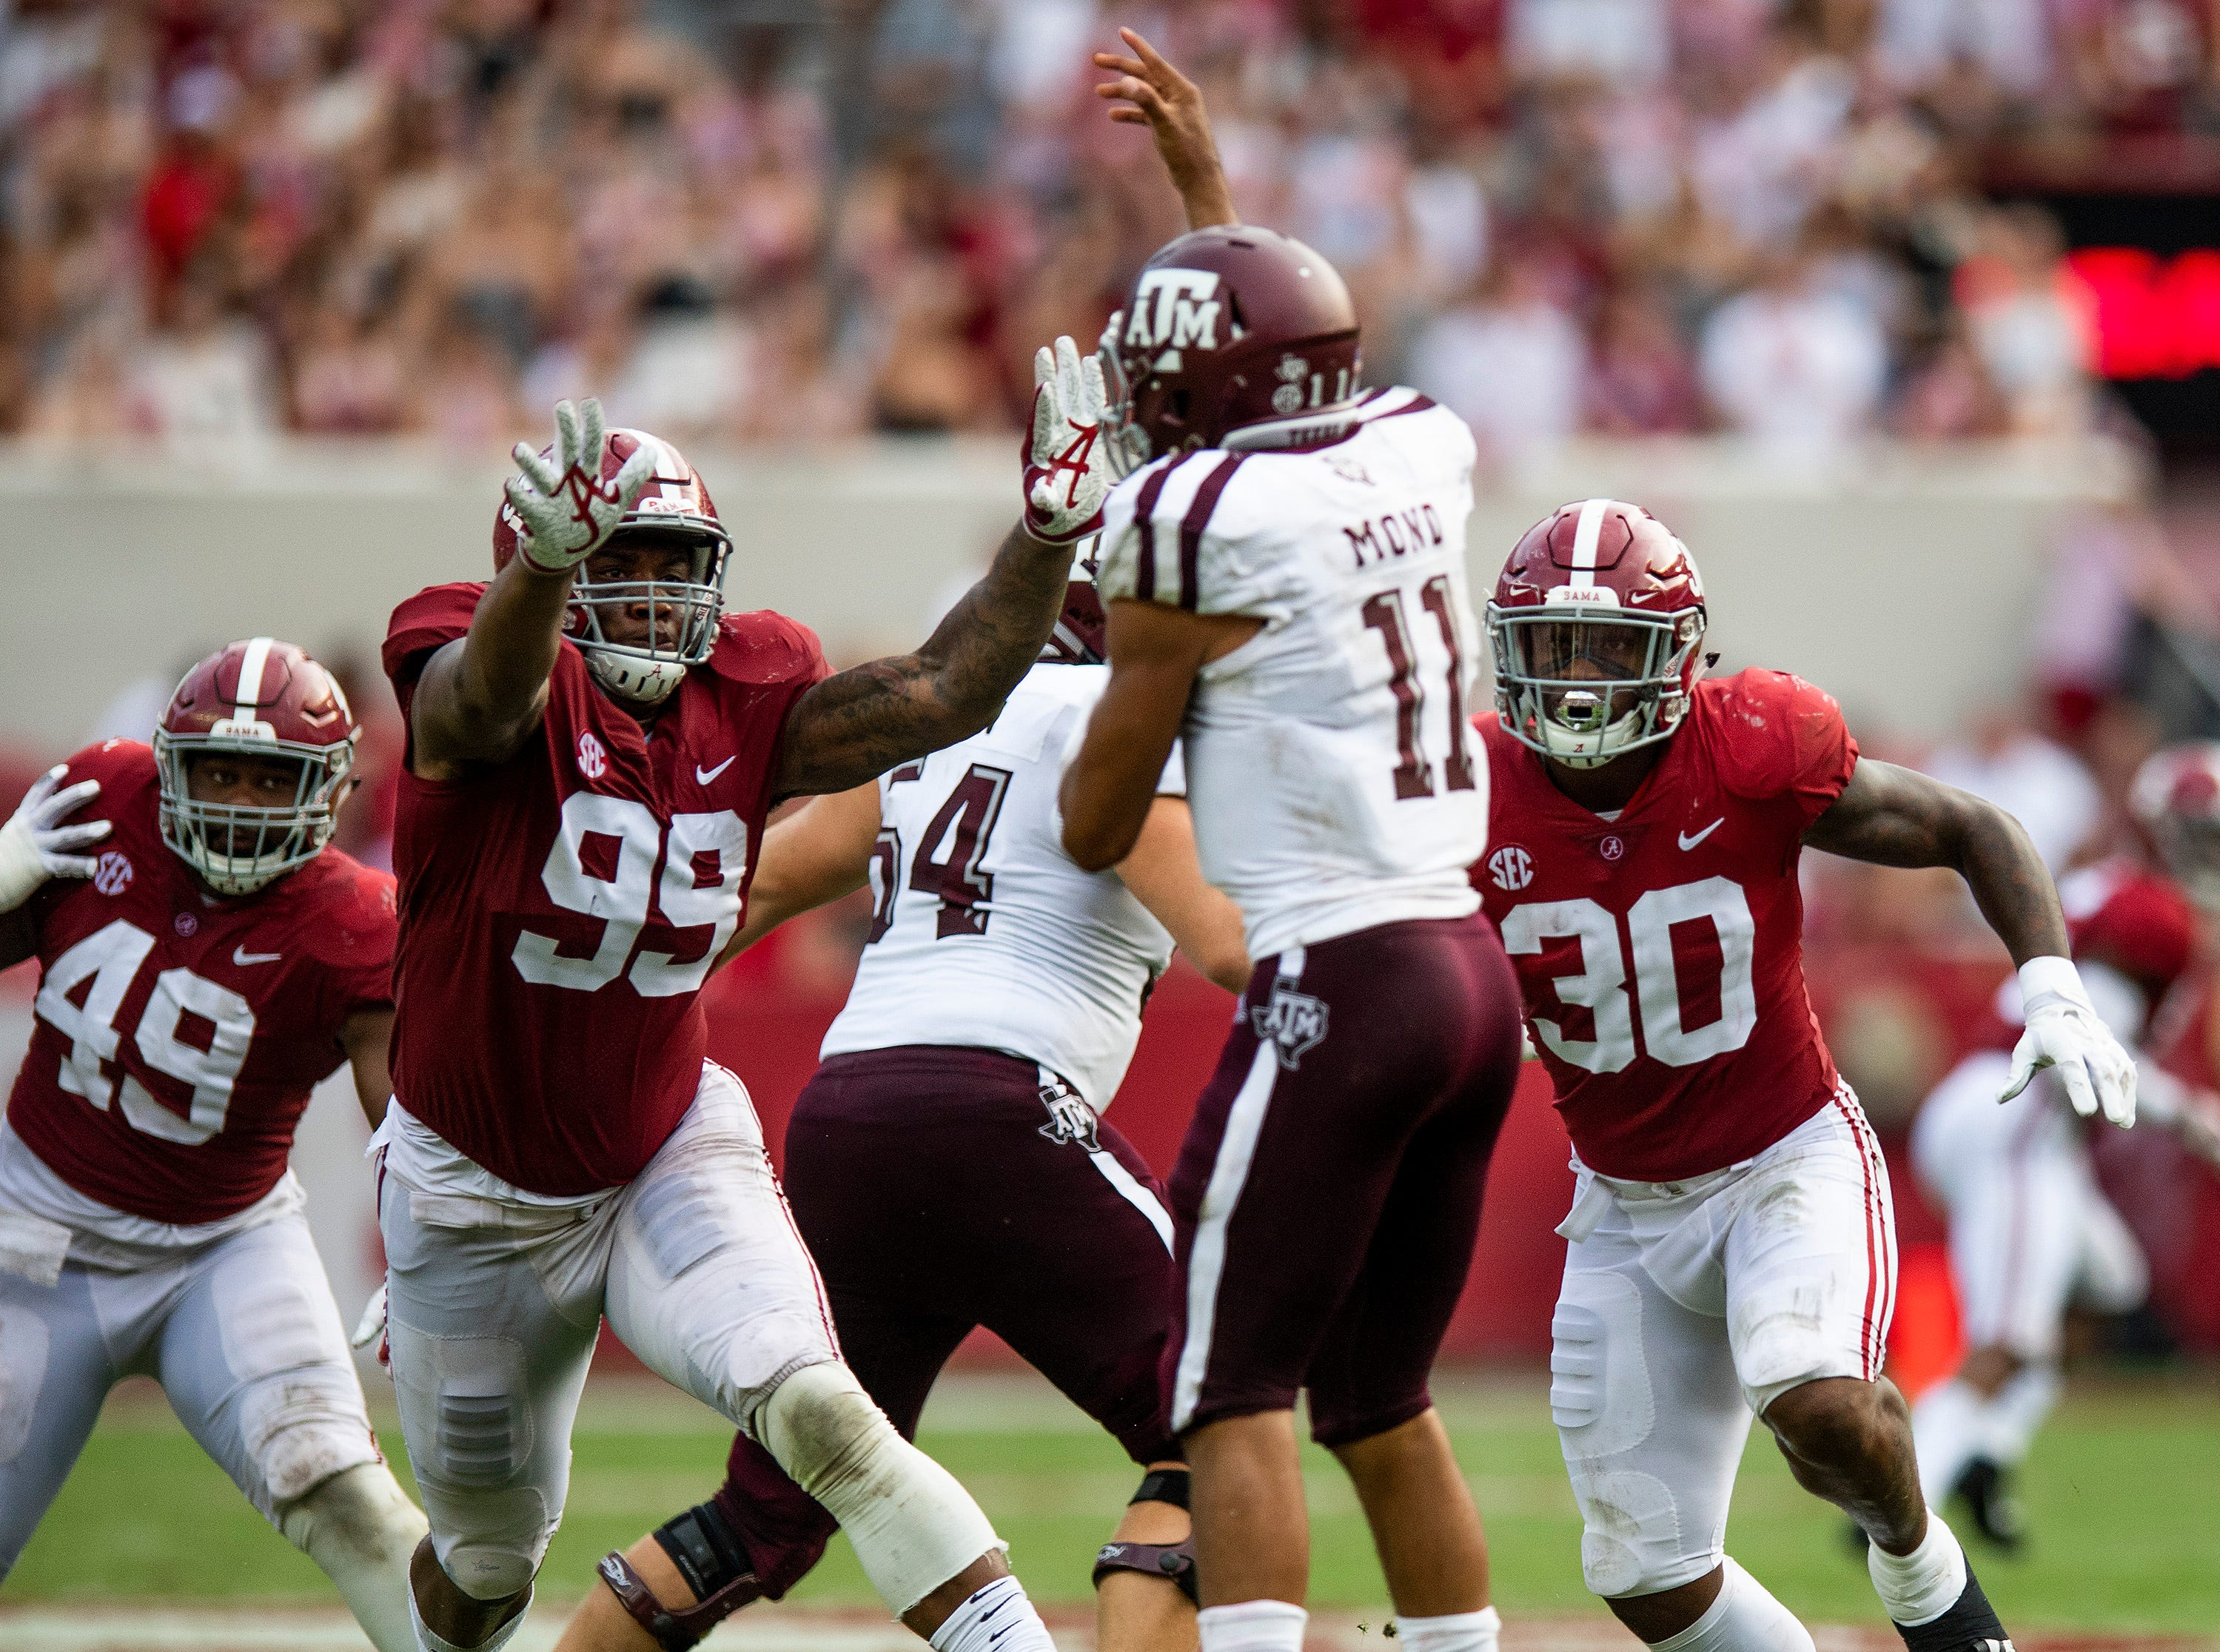 Alabama defensive lineman Raekwon Davis (99) and linebacker Mack Wilson (30) pressure Texas A&M quarterback Kellen Mond (11) in second half action in Tuscaloosa, Ala., on Saturday September 22, 2018.